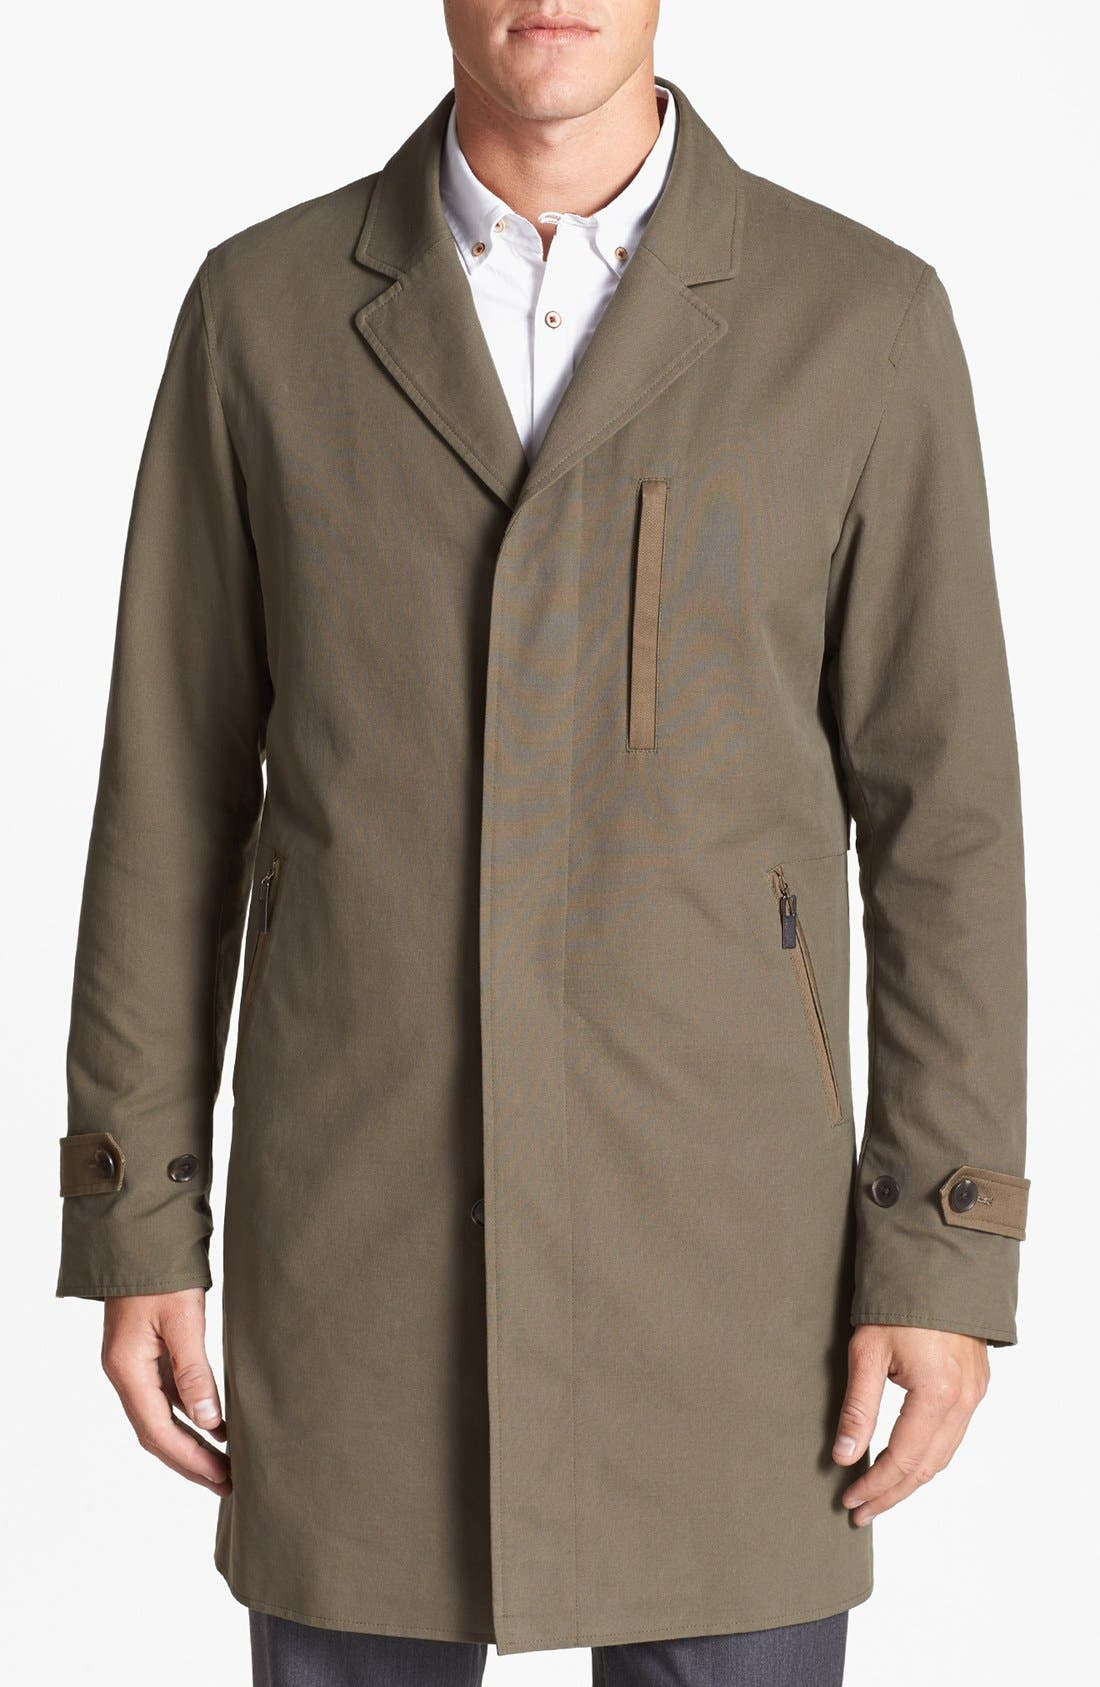 Alternate Image 1 Selected - Vince Camuto Trench Coat